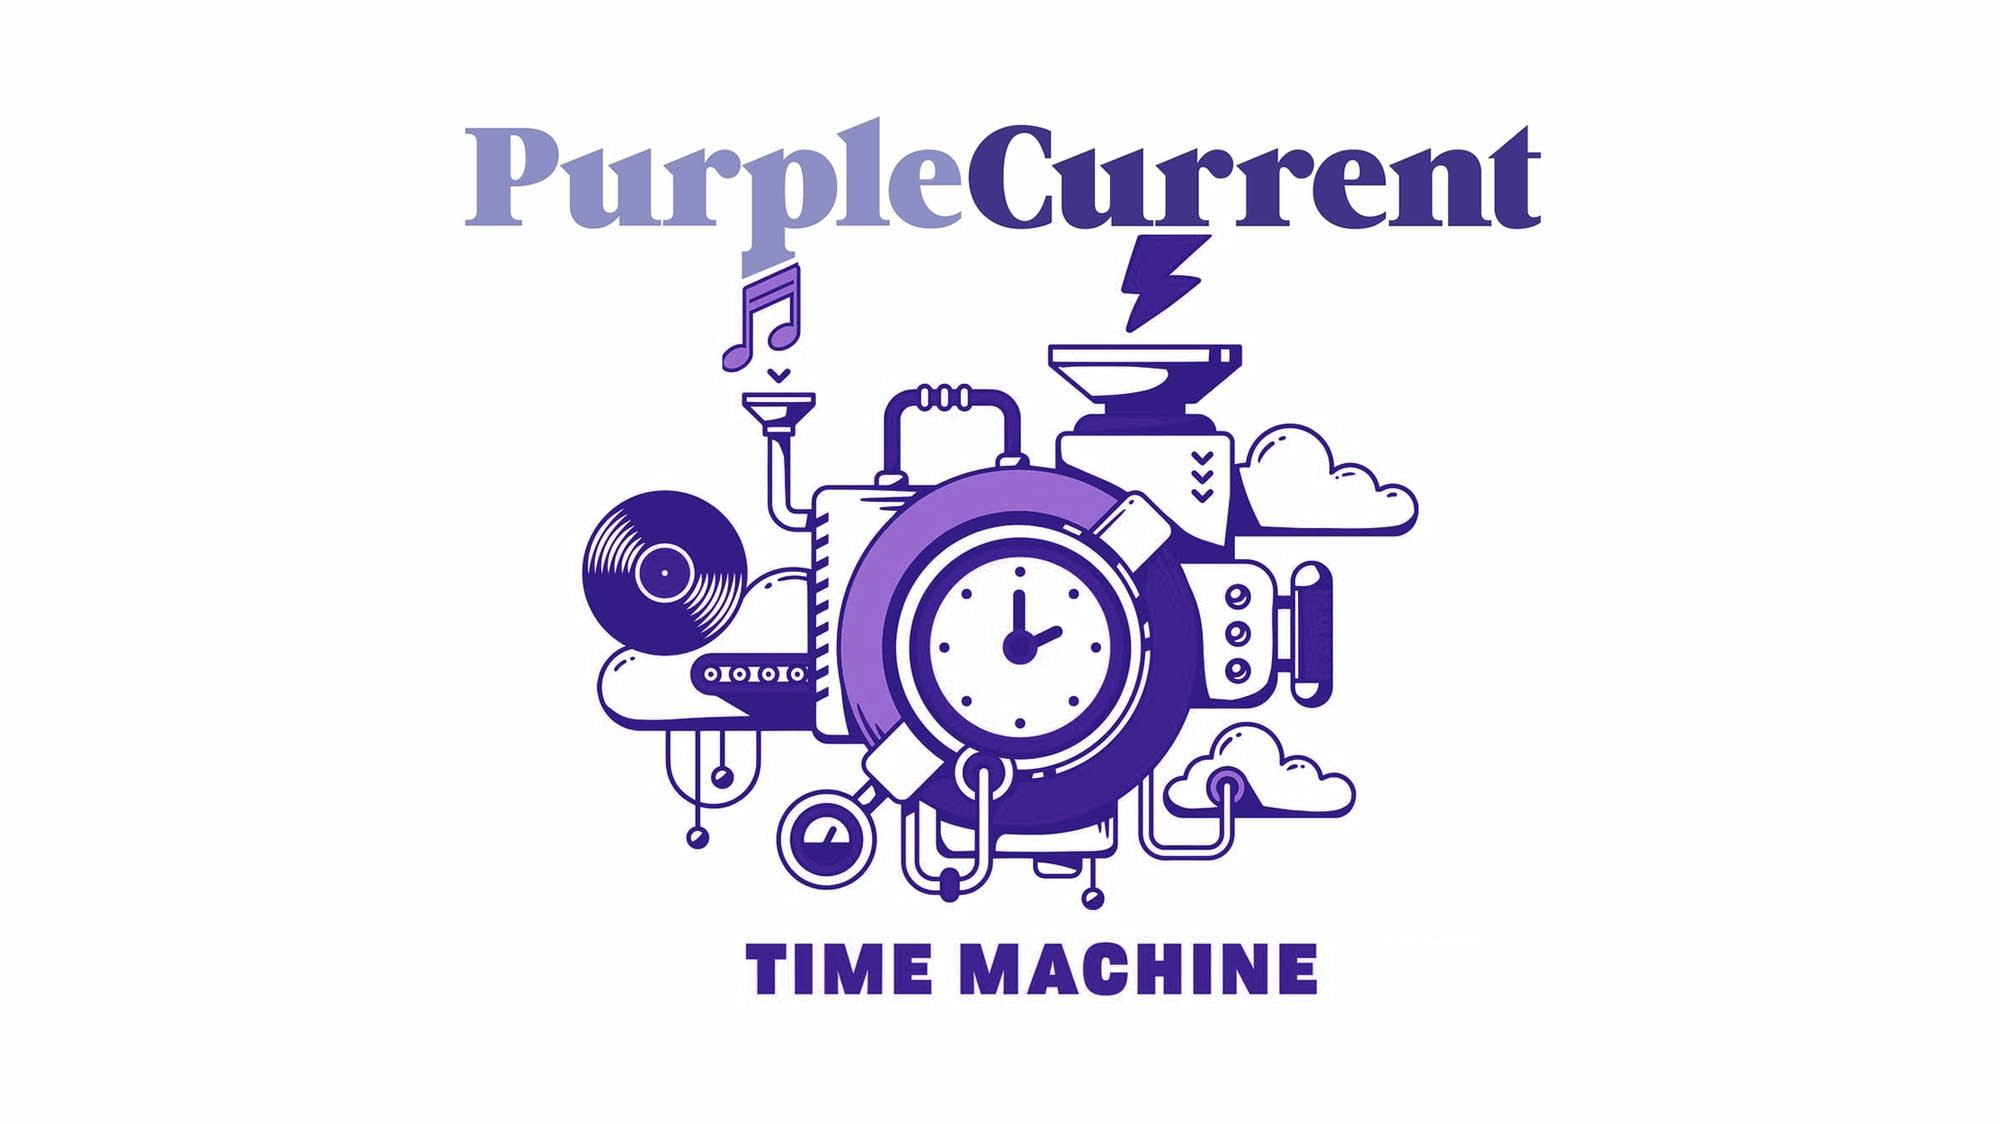 Purple Current Time Machine